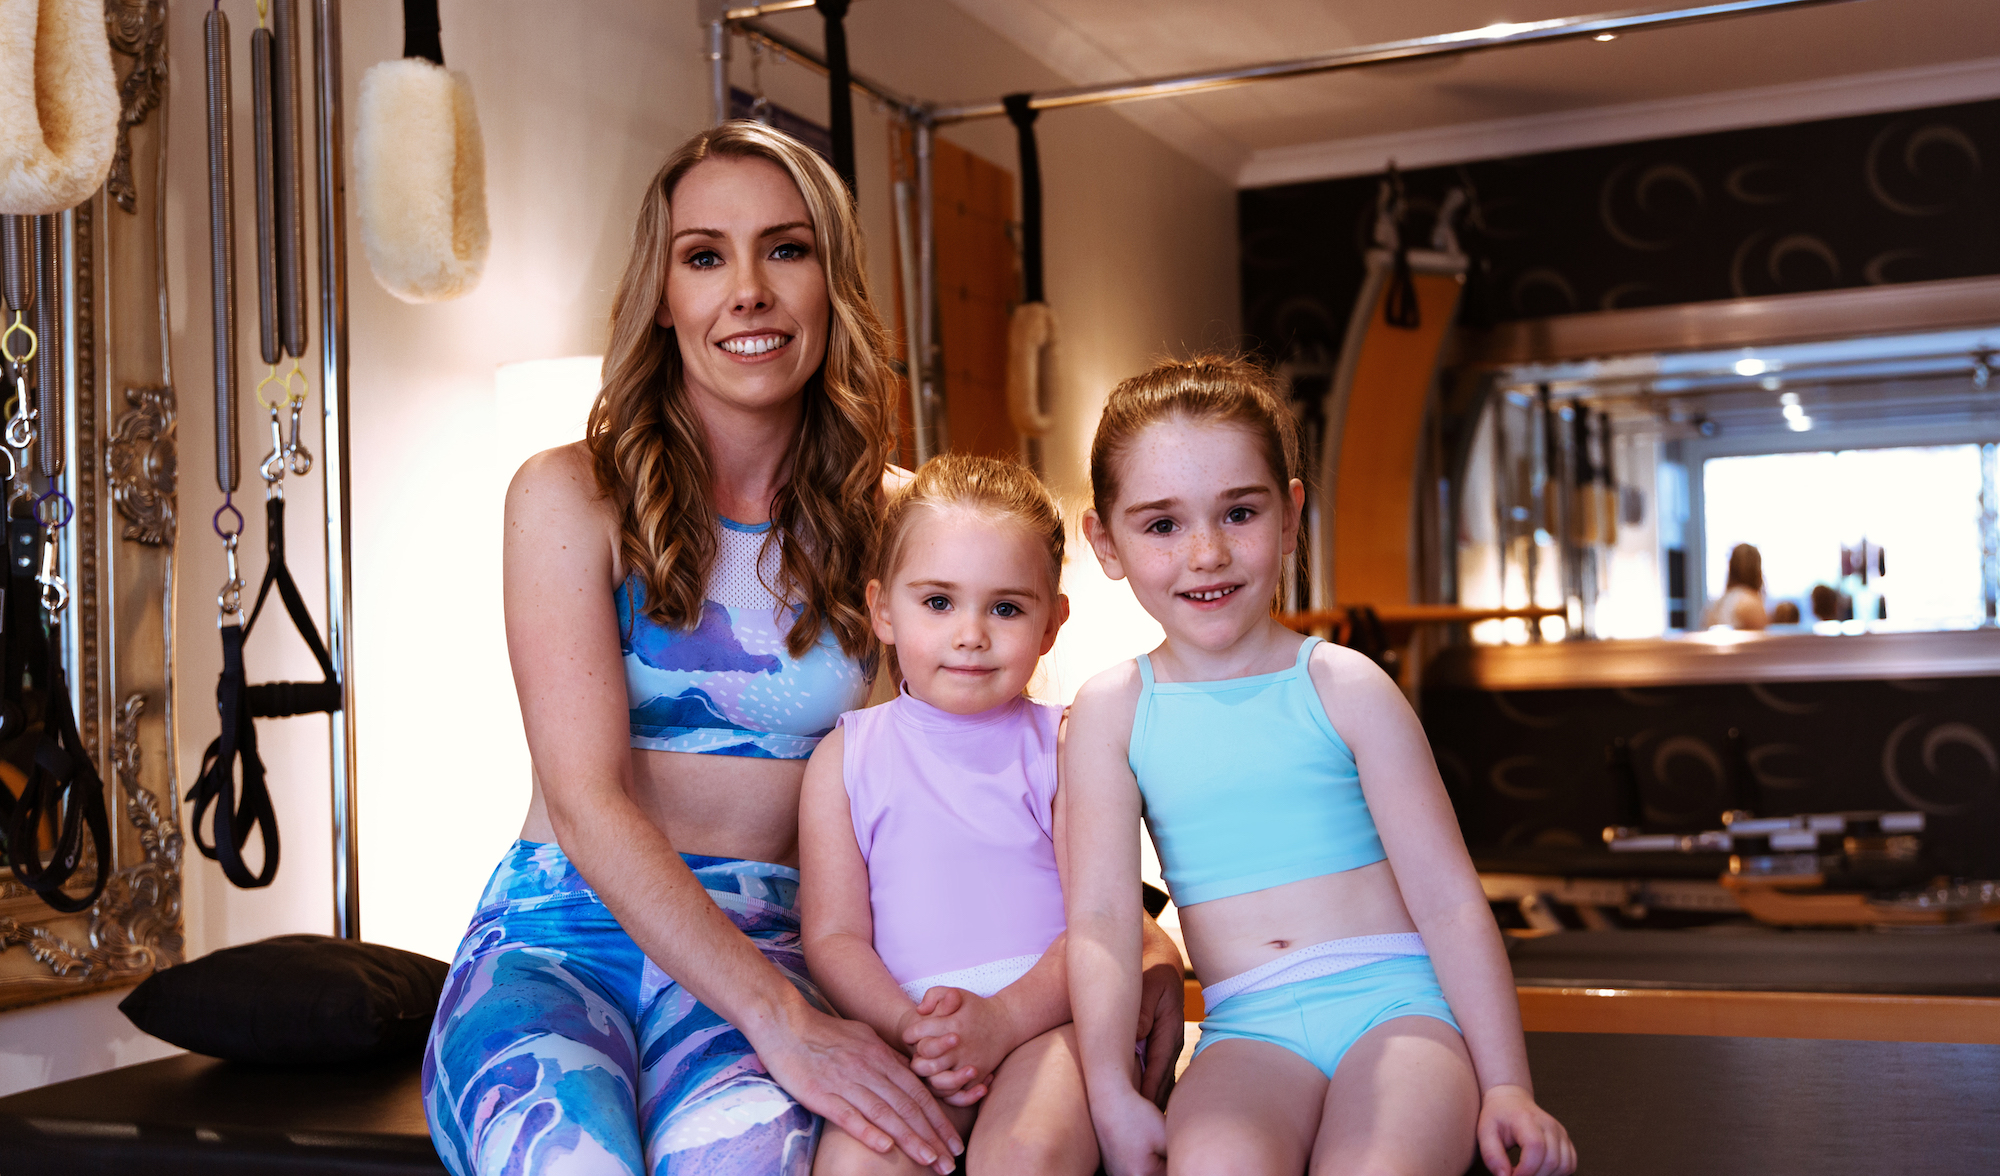 Kate Boyle with daughters Charlotte and Ava in the Energetiks  Moonstone Collection . Kate wears the  Jasmine Crop  and  Lanna 7/8th Legging  in Moonstone, Charlotte wears the  Willow Crop  and  Emily Short  in Lavender, and Ava wears the  Coco Crop  and  Emily Short  in Spearmint.